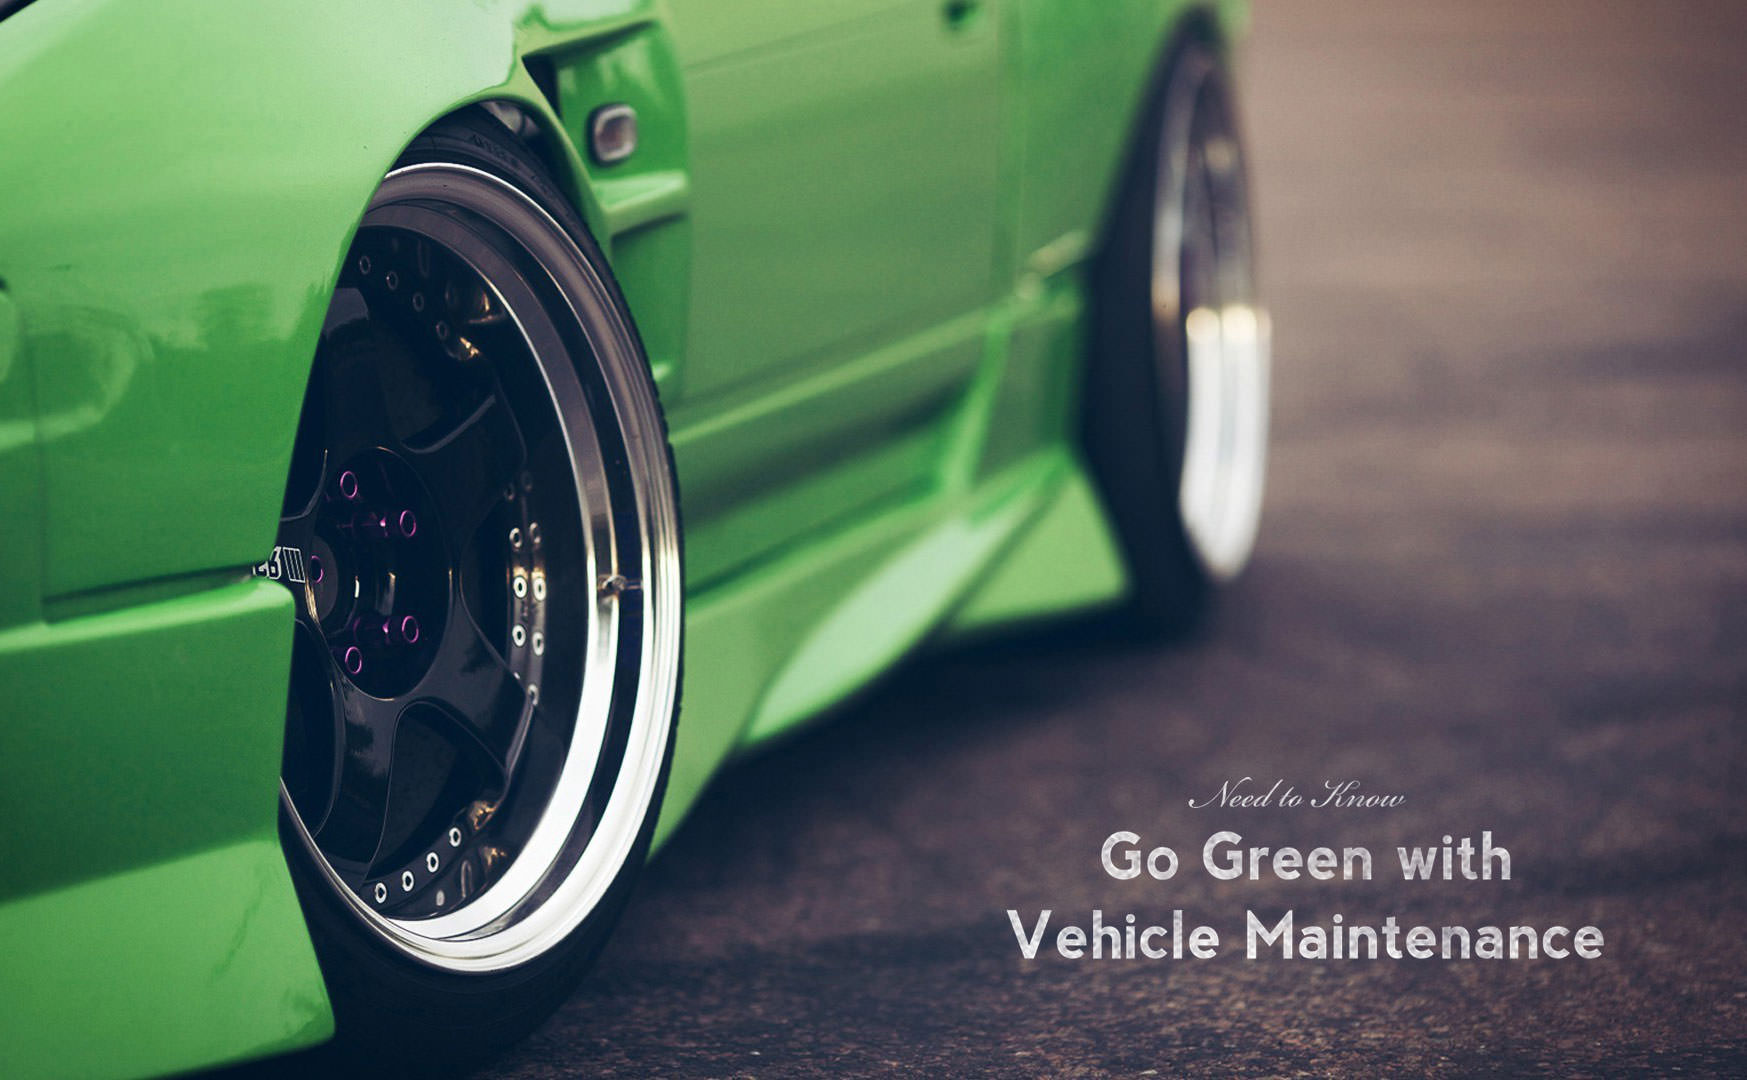 Go Green with Vehicle Maintenance